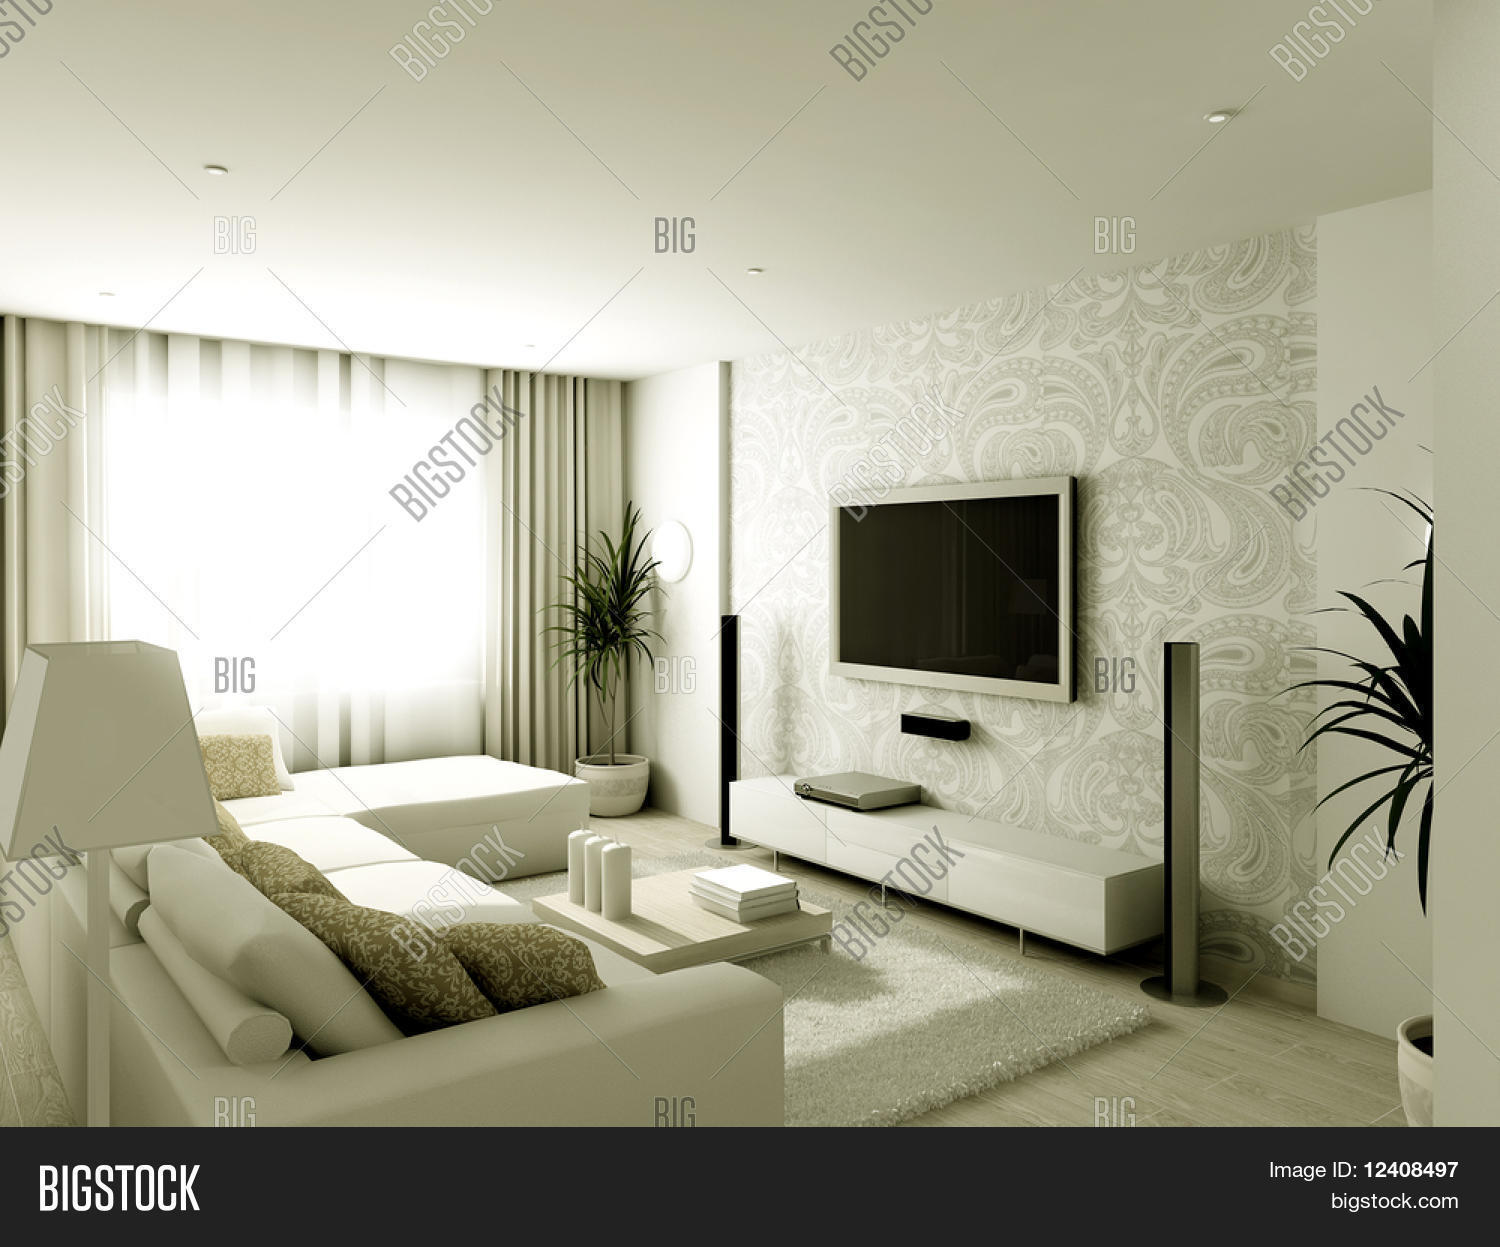 Modern design interior living room image photo bigstock for Design your living room online 3d